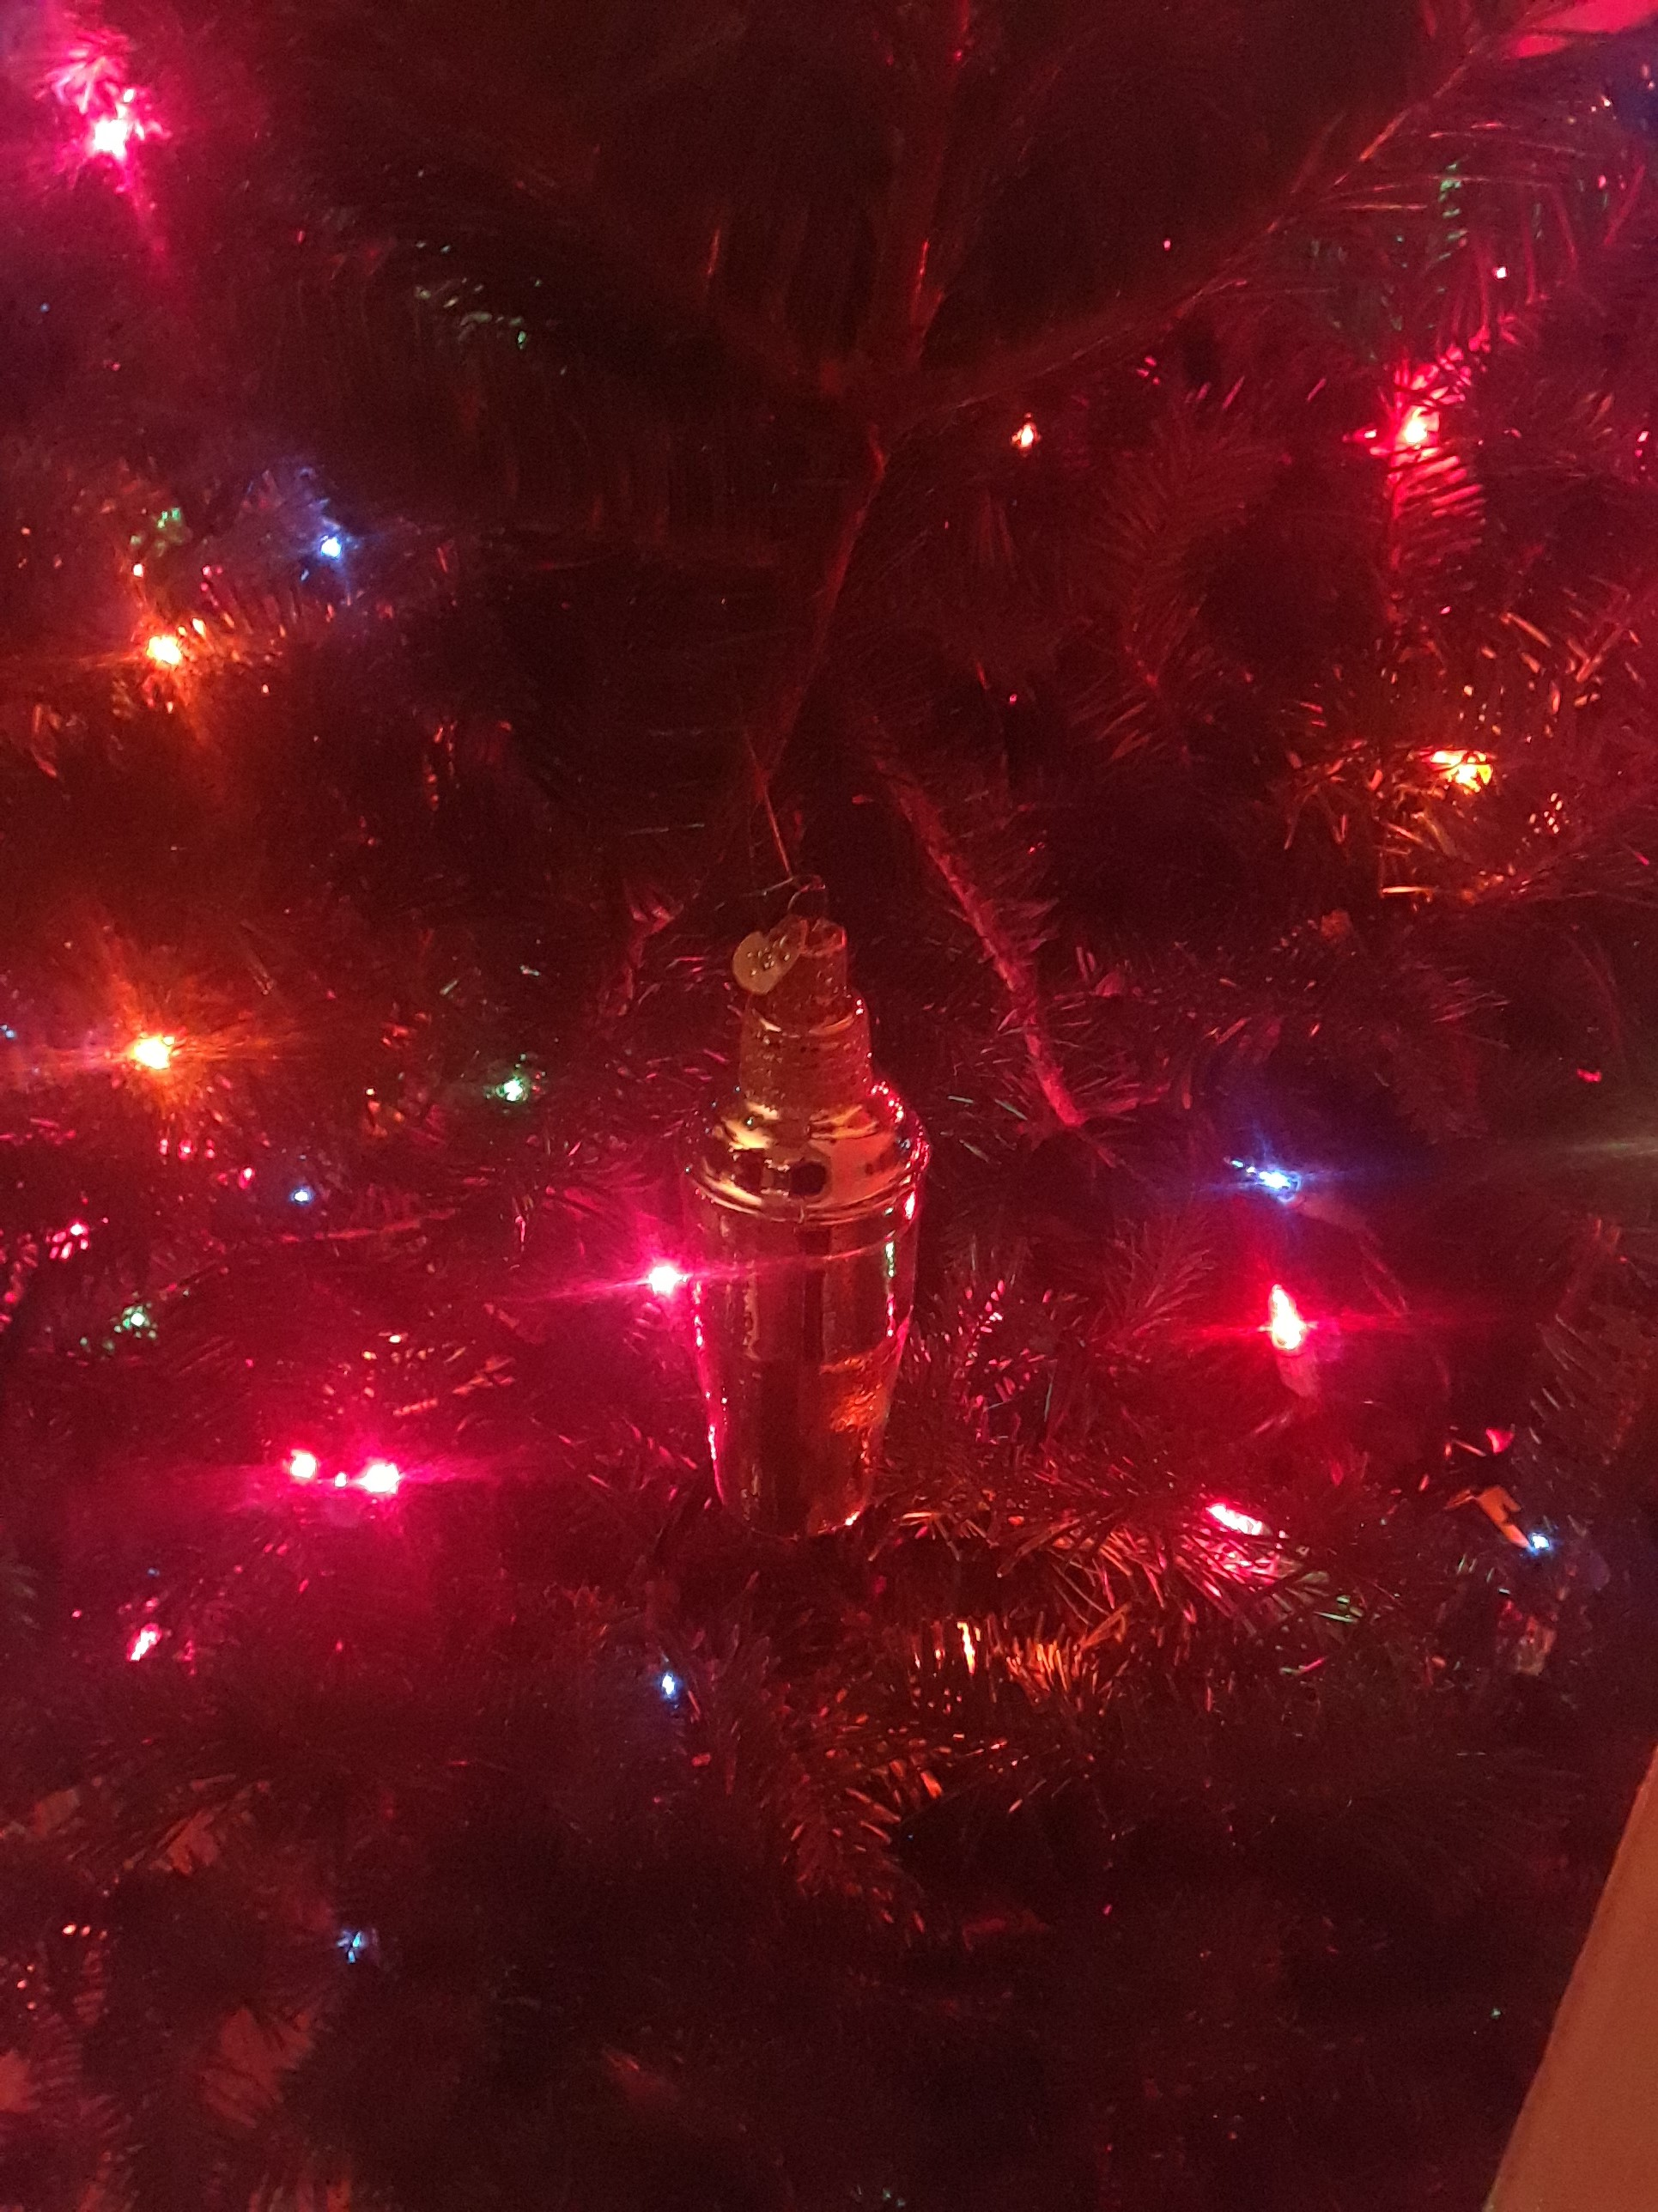 This year's new ornament, a cocktail shaker, Dec 2018